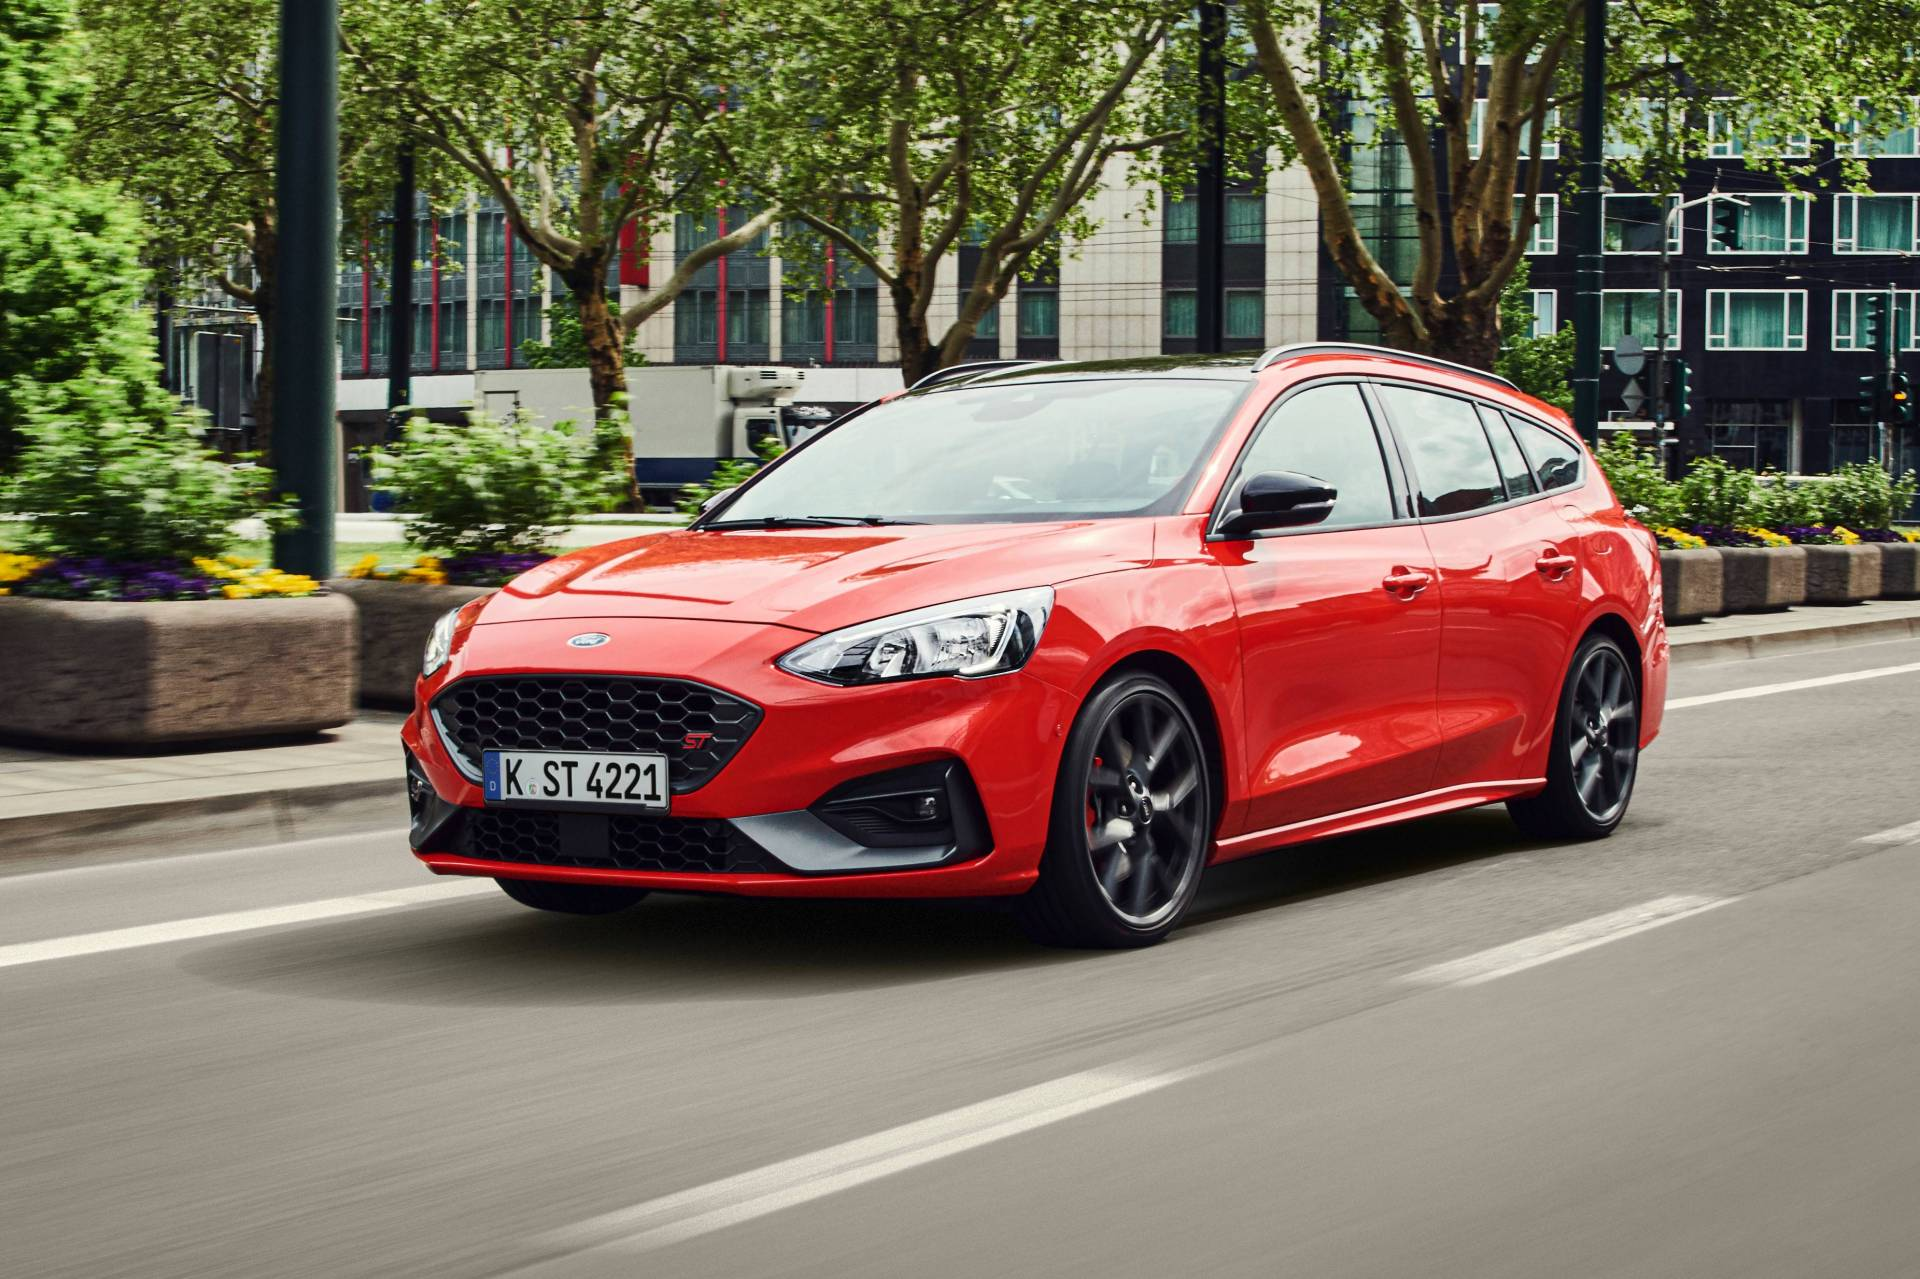 2019 ford focus st wagon introduced with ecoblue ecoboost. Black Bedroom Furniture Sets. Home Design Ideas